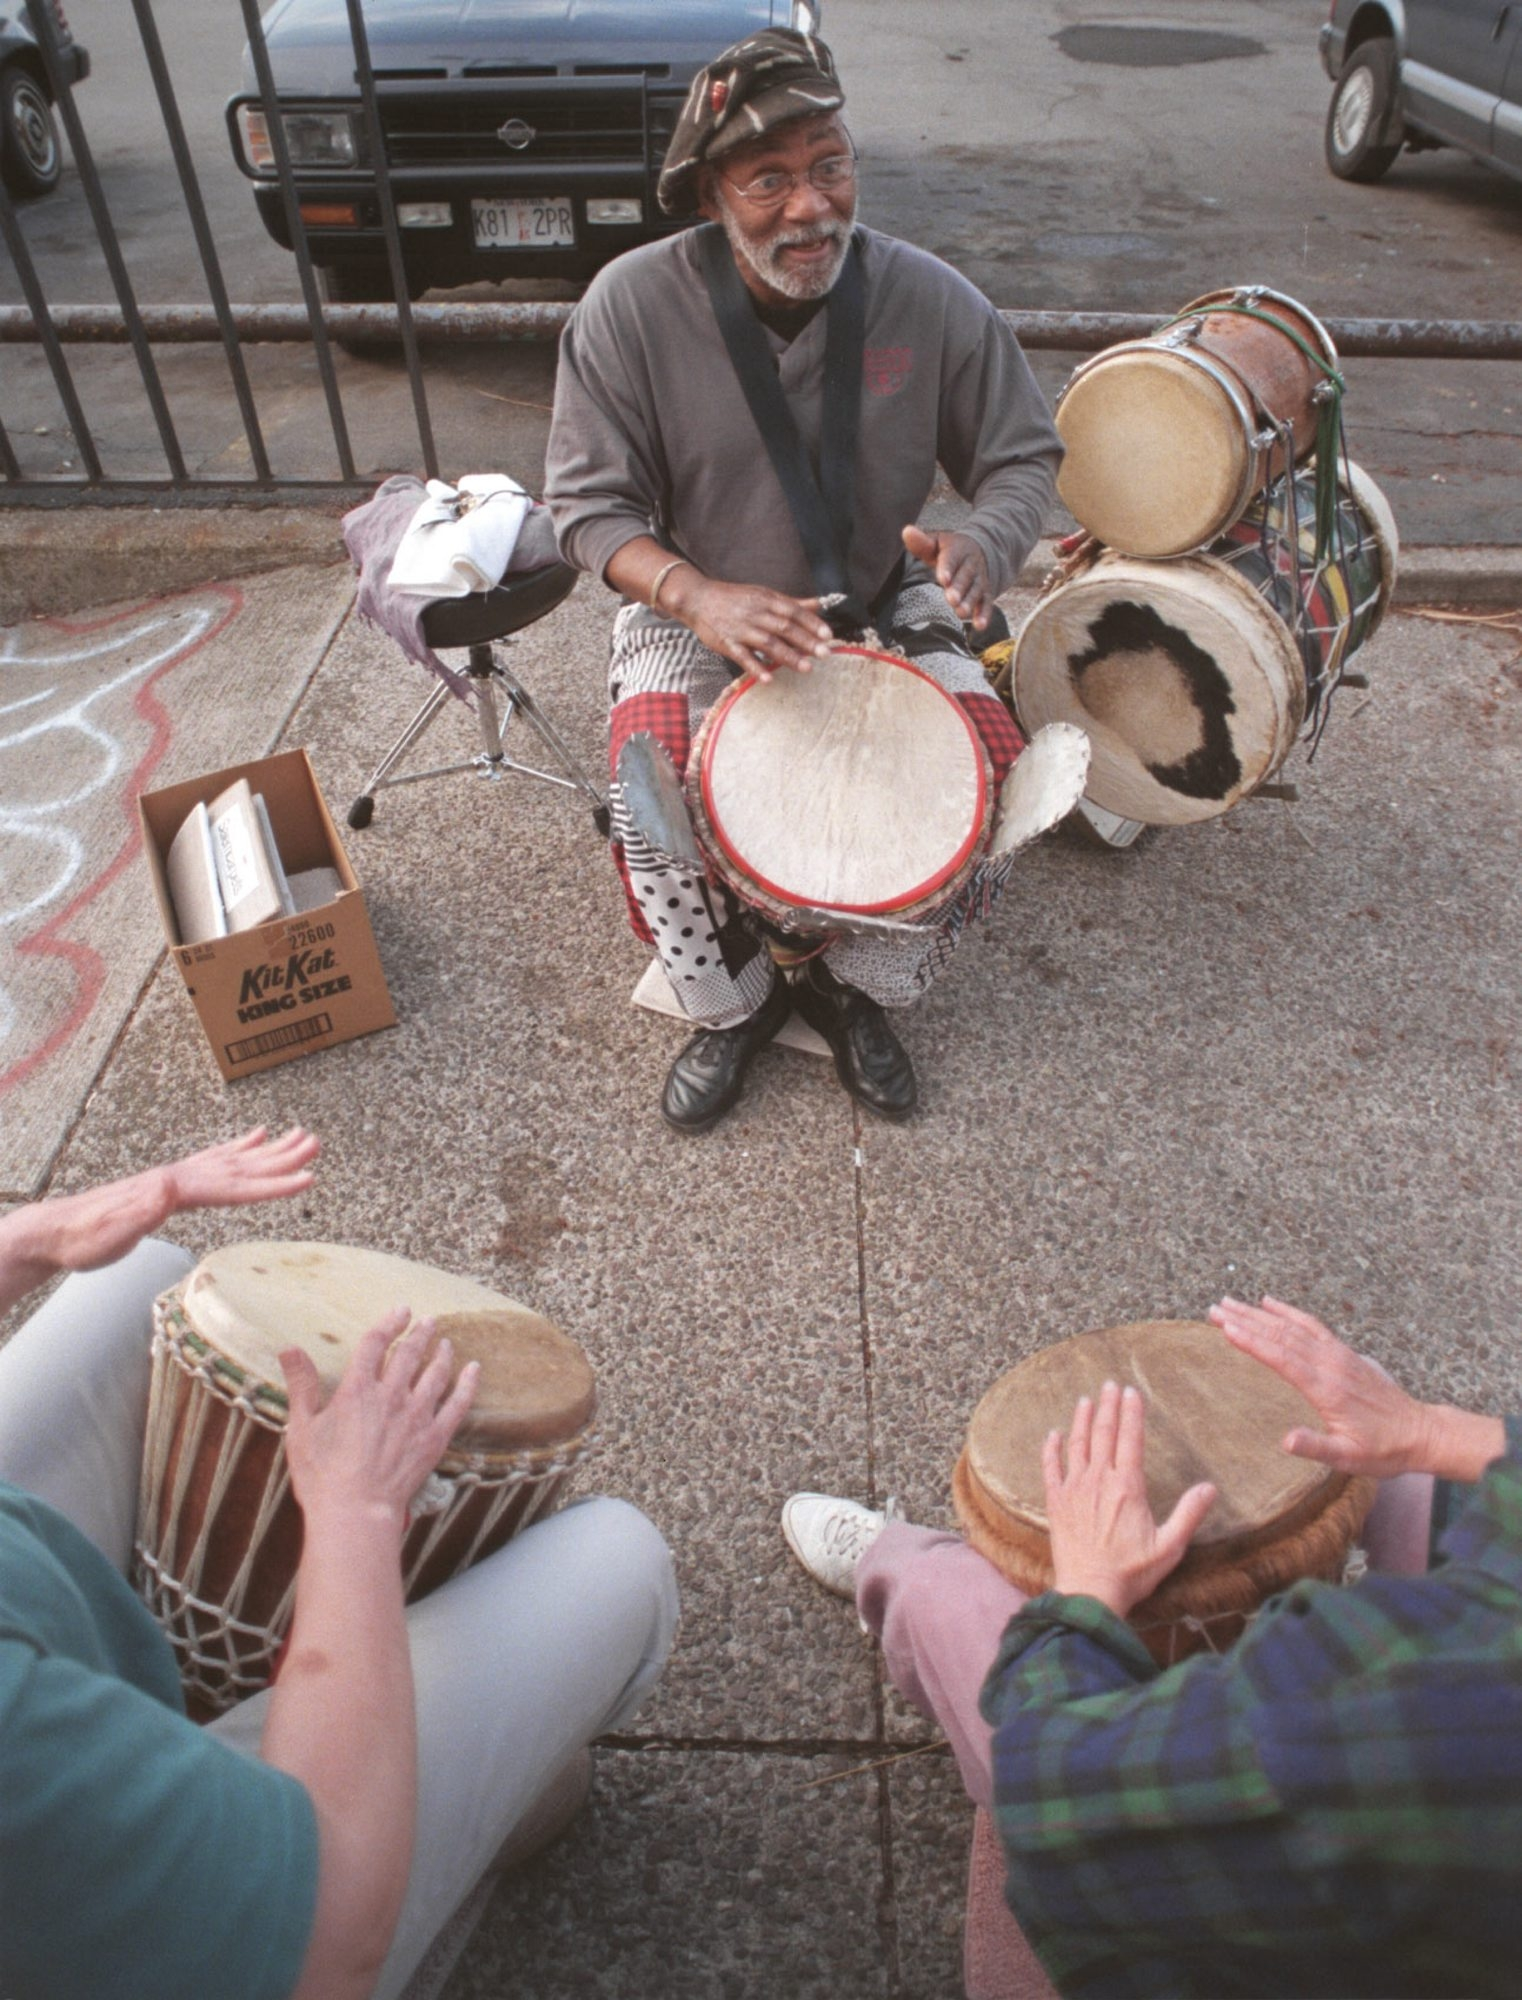 Emile Latimer specialized in African hand drumming and once gave lessons in a park on Elmwood Avenue.